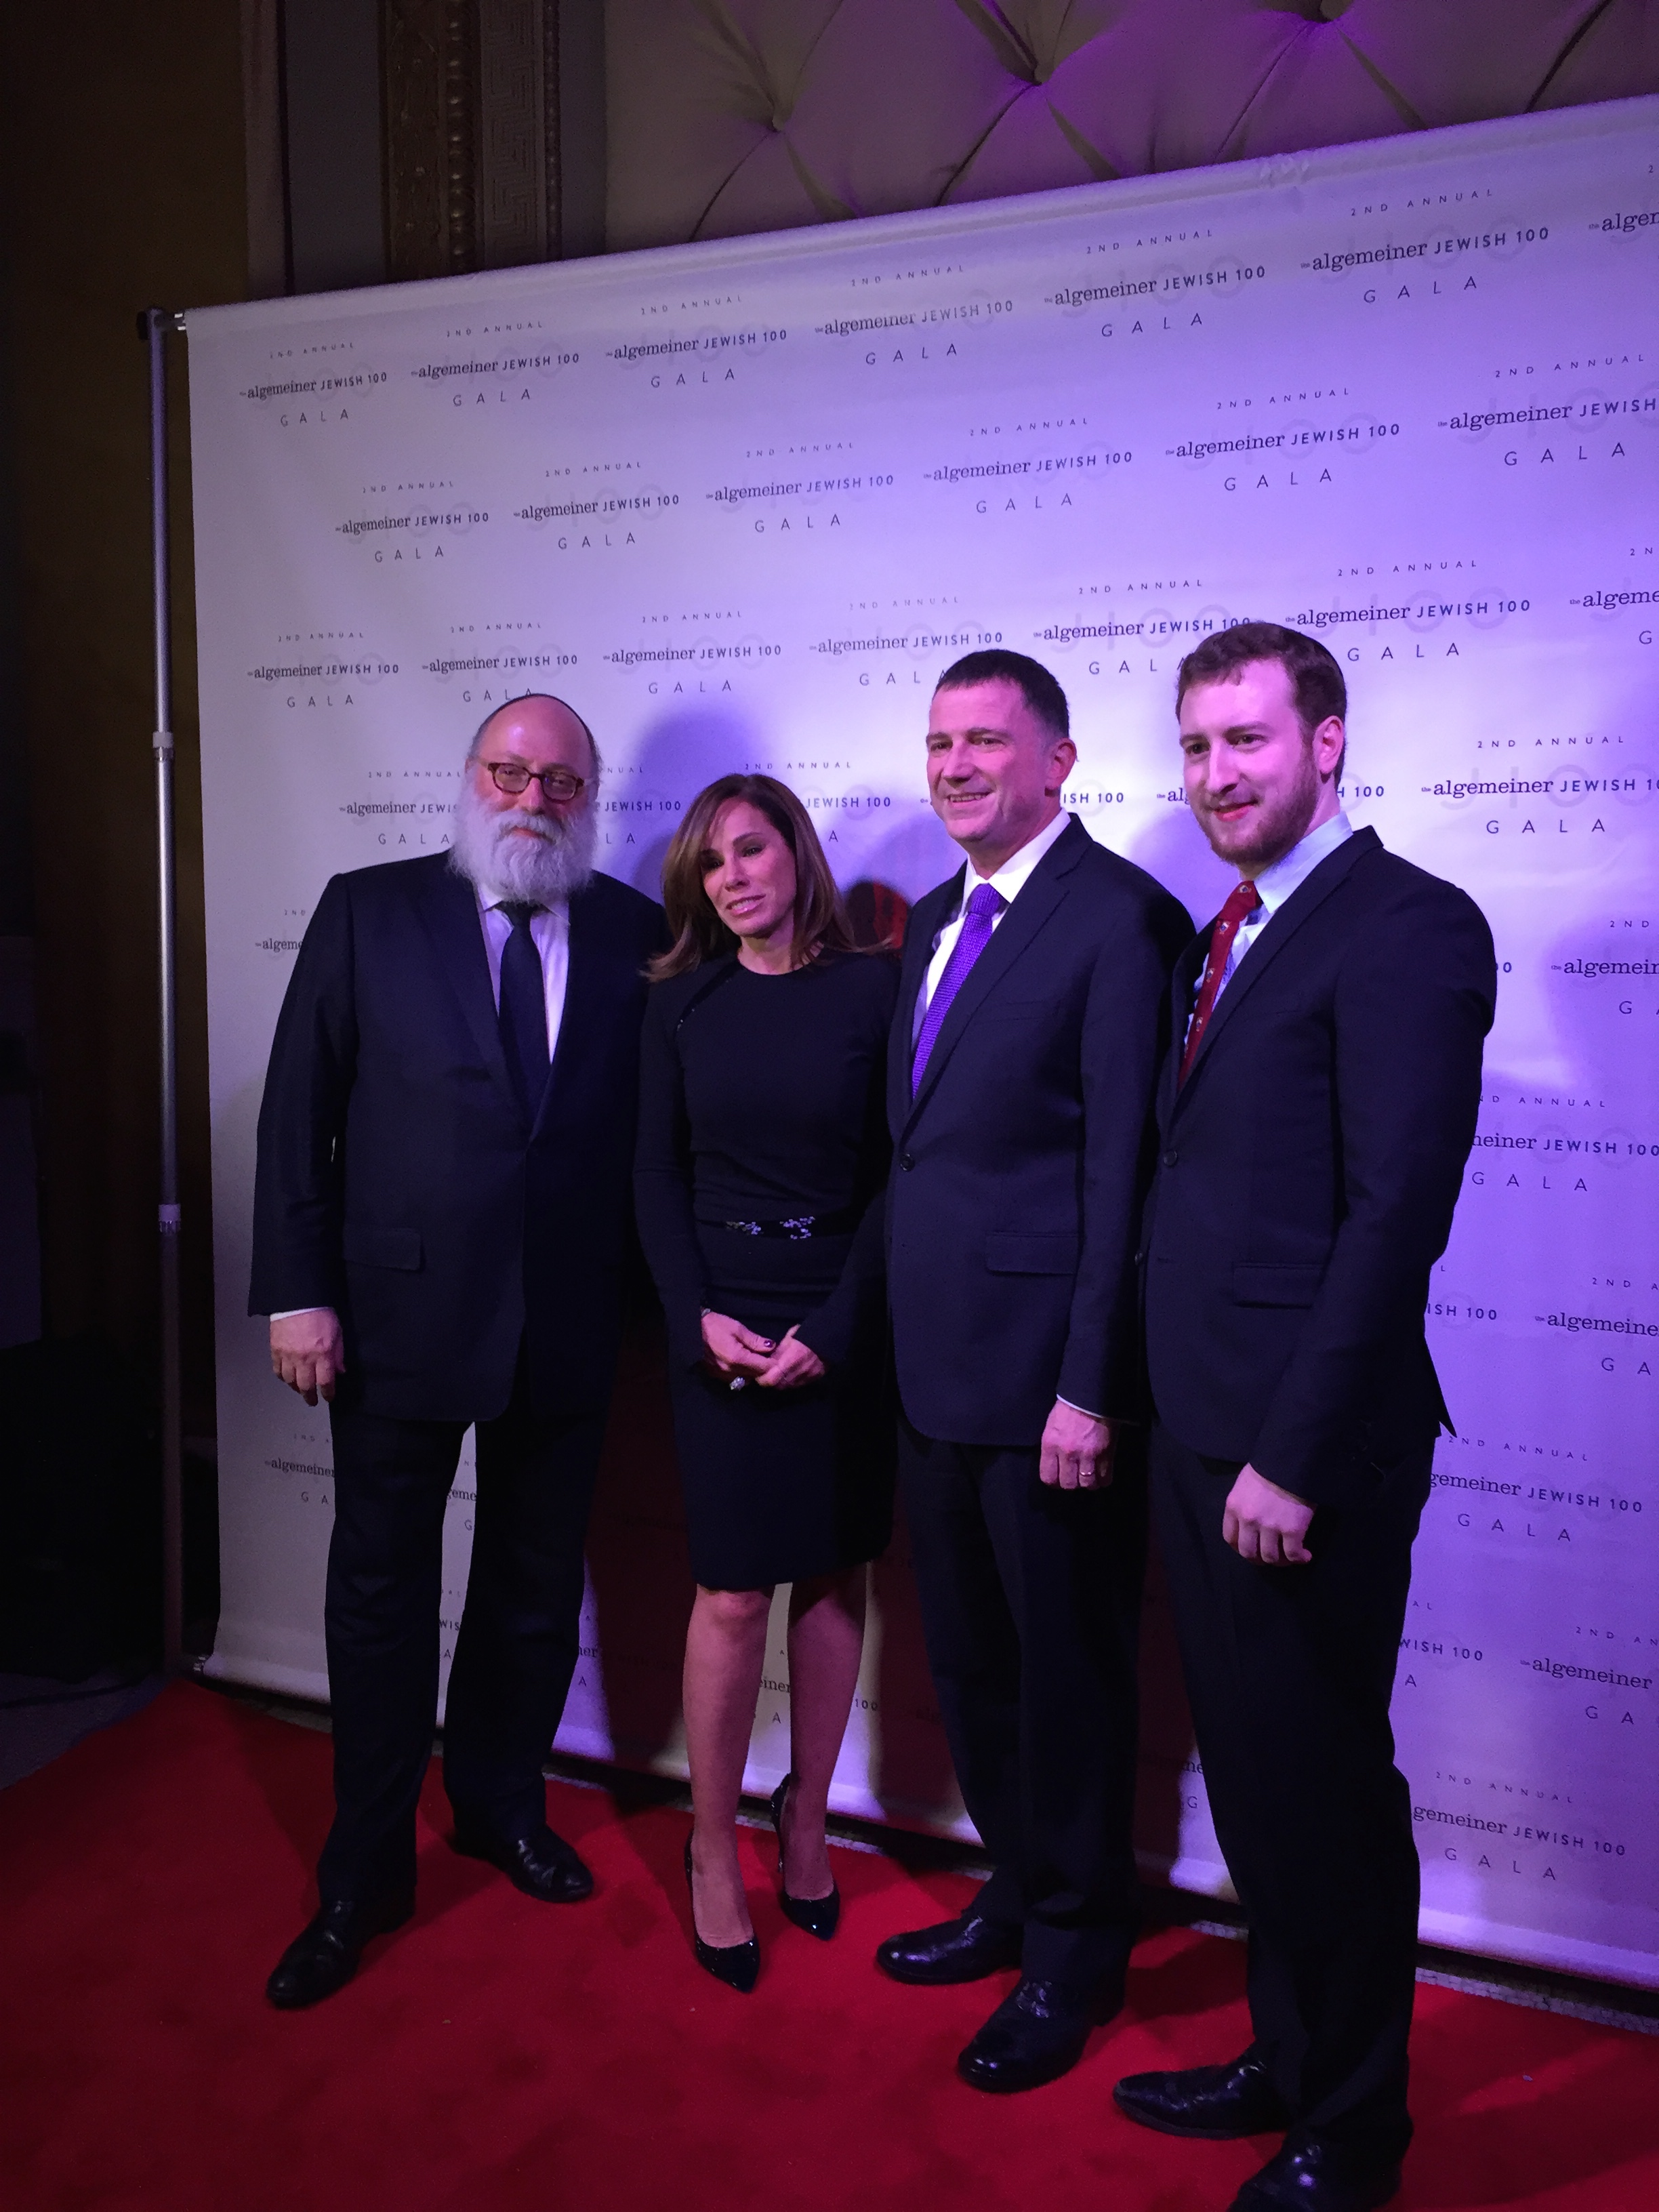 From left to right, Algemeiner publisher Simon Jacobson, Melissa Rivers, speaker of the Knesset Yuri Edelstein, and Algemeiner Editor in Chief Dovid Efune